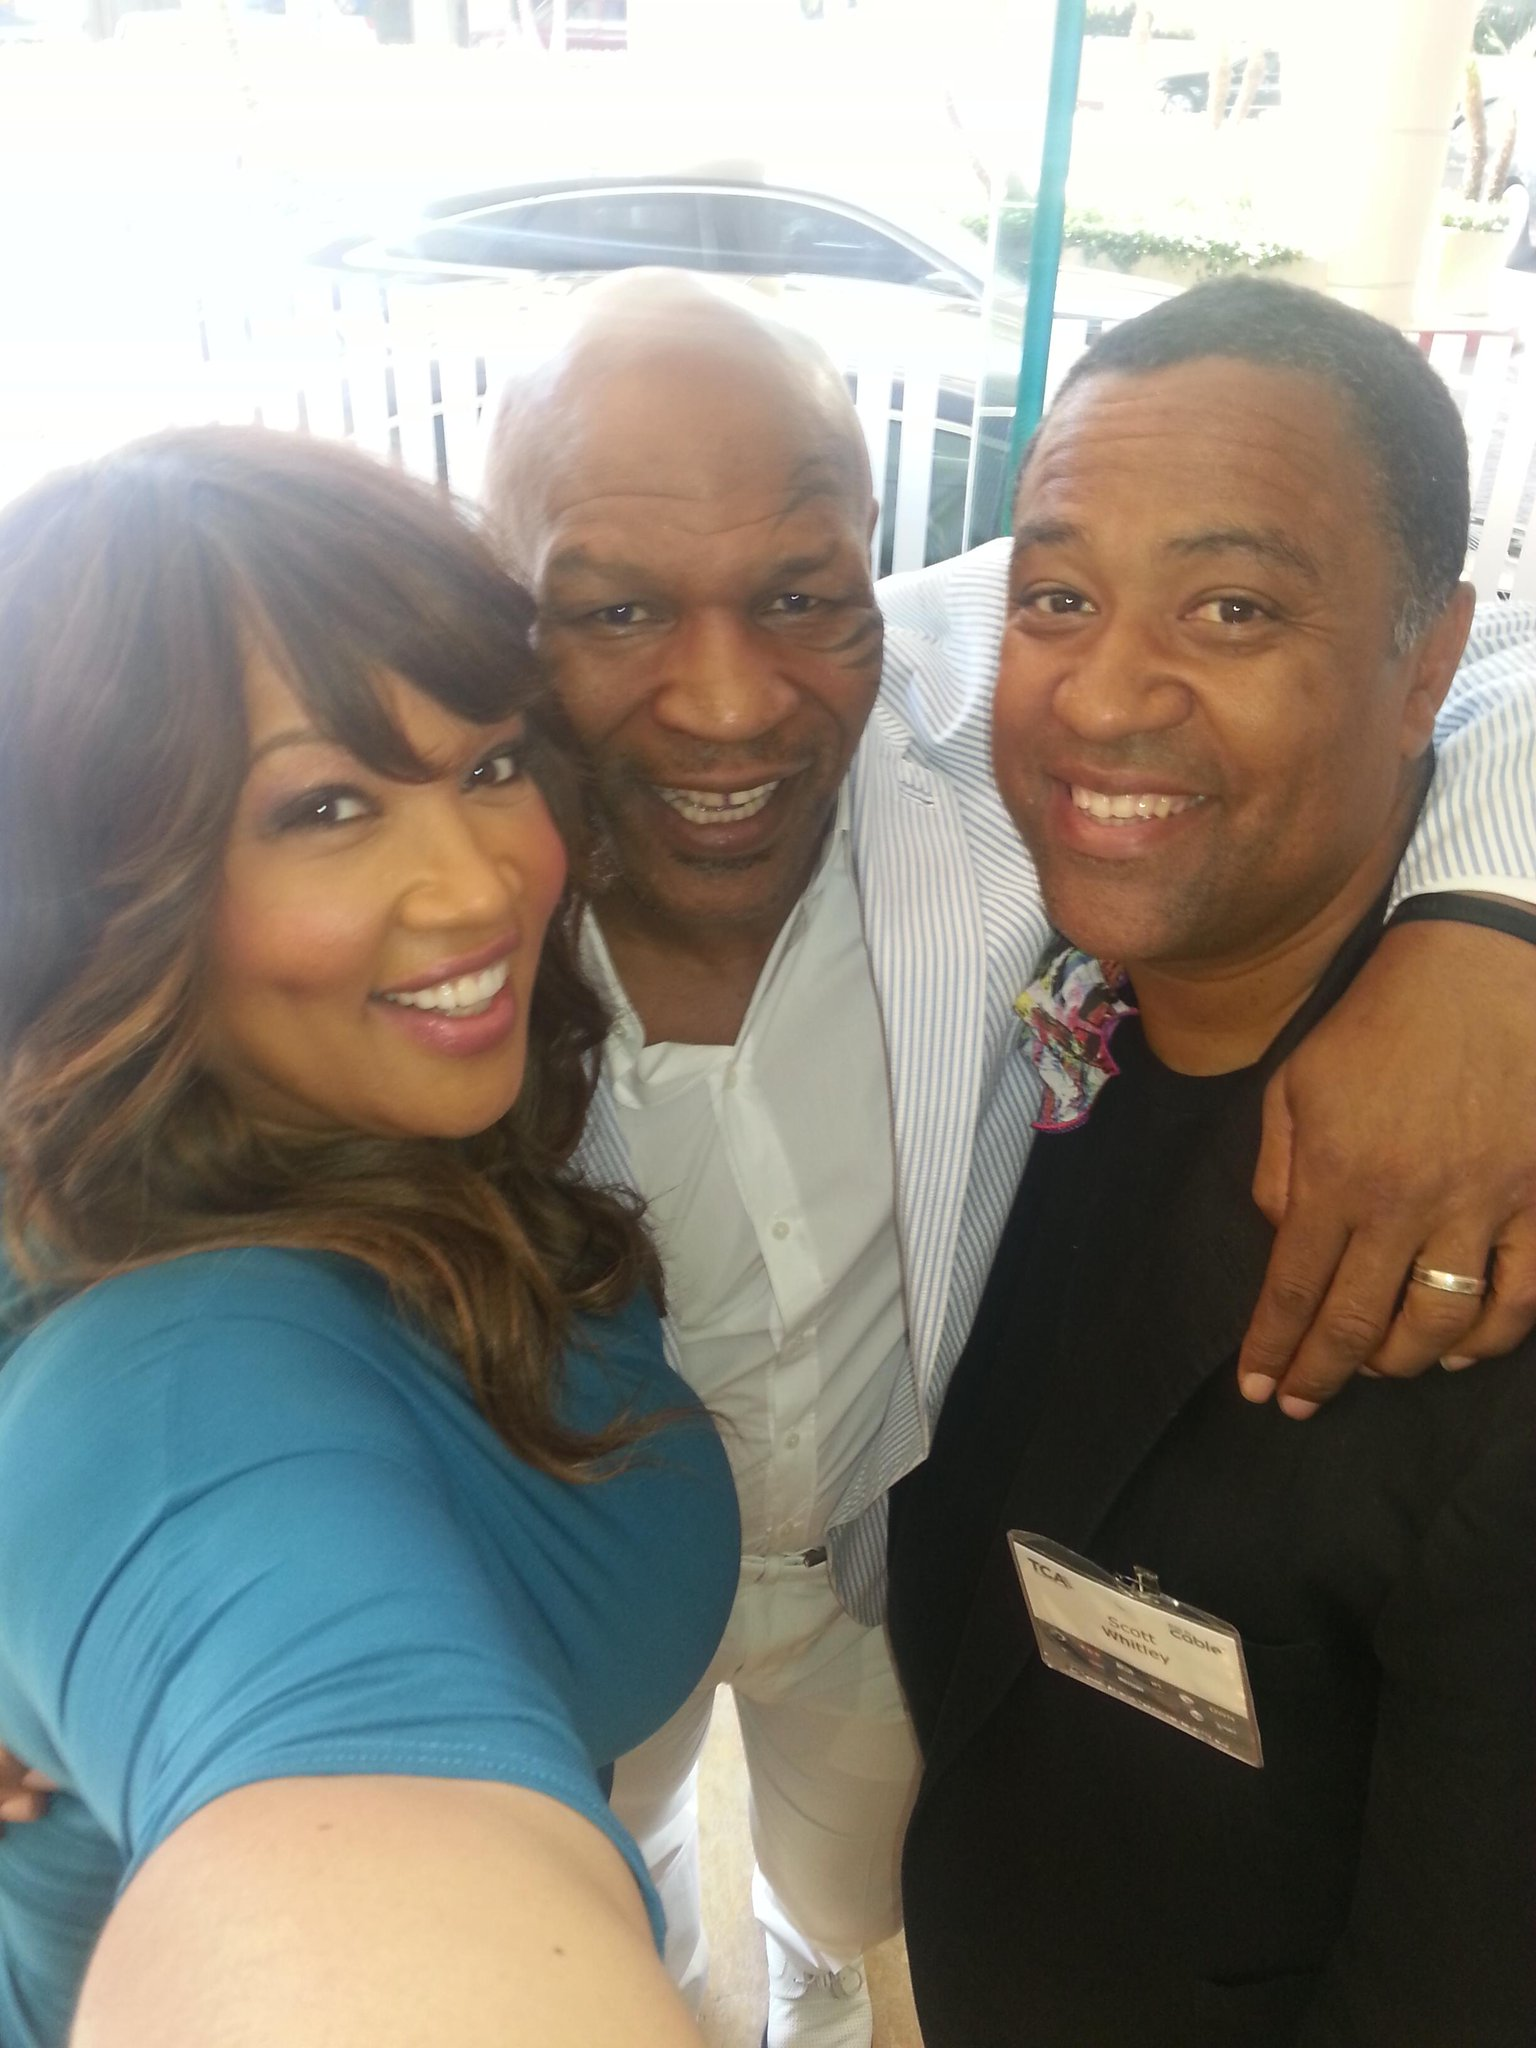 Kickn it with brother and Mike Tyson at the TCA's http://t.co/S1ZVVTkDBl